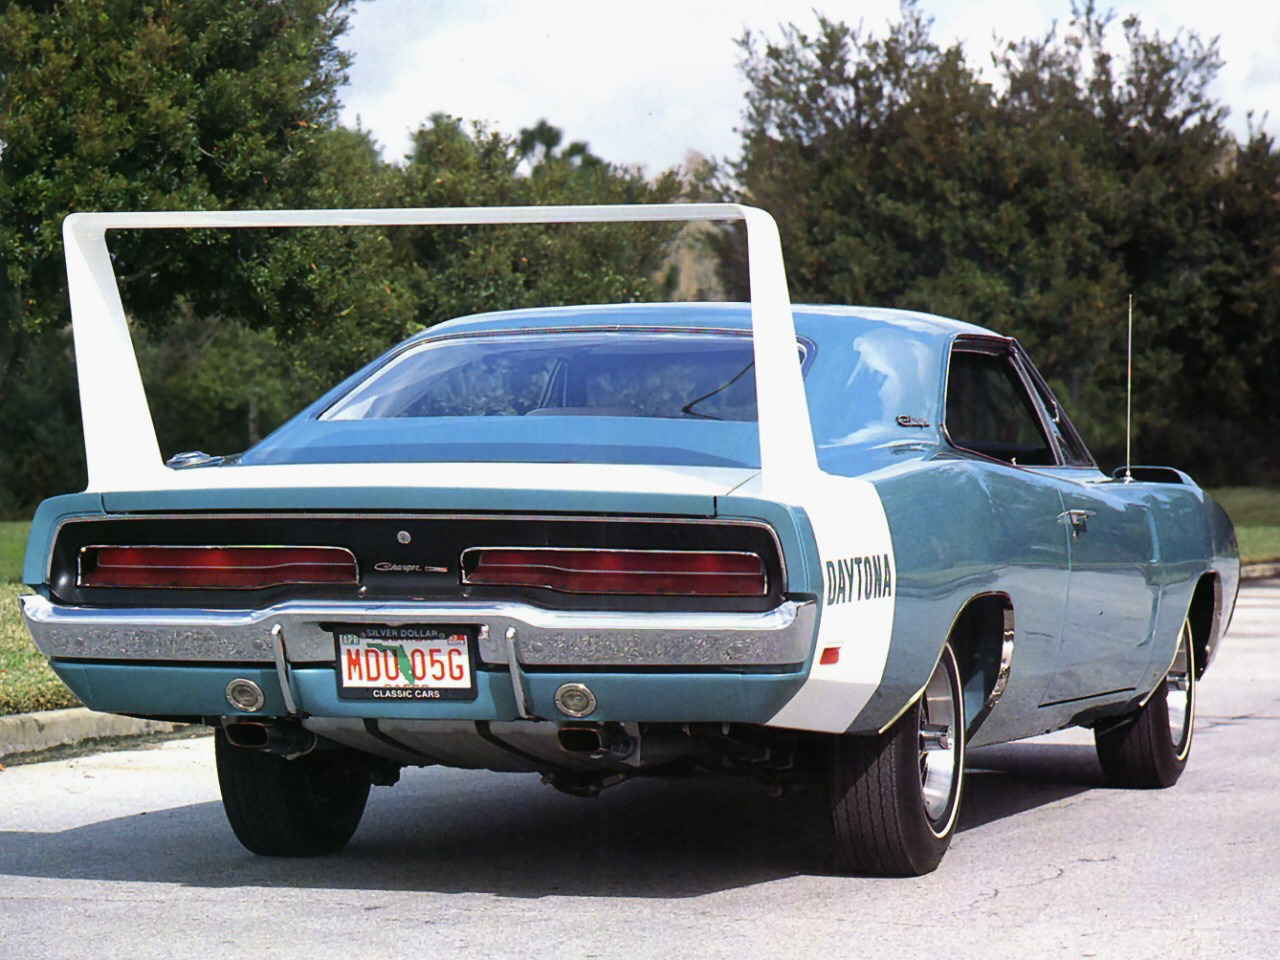 1969 dodge charger daytona rear. Cars Review. Best American Auto & Cars Review